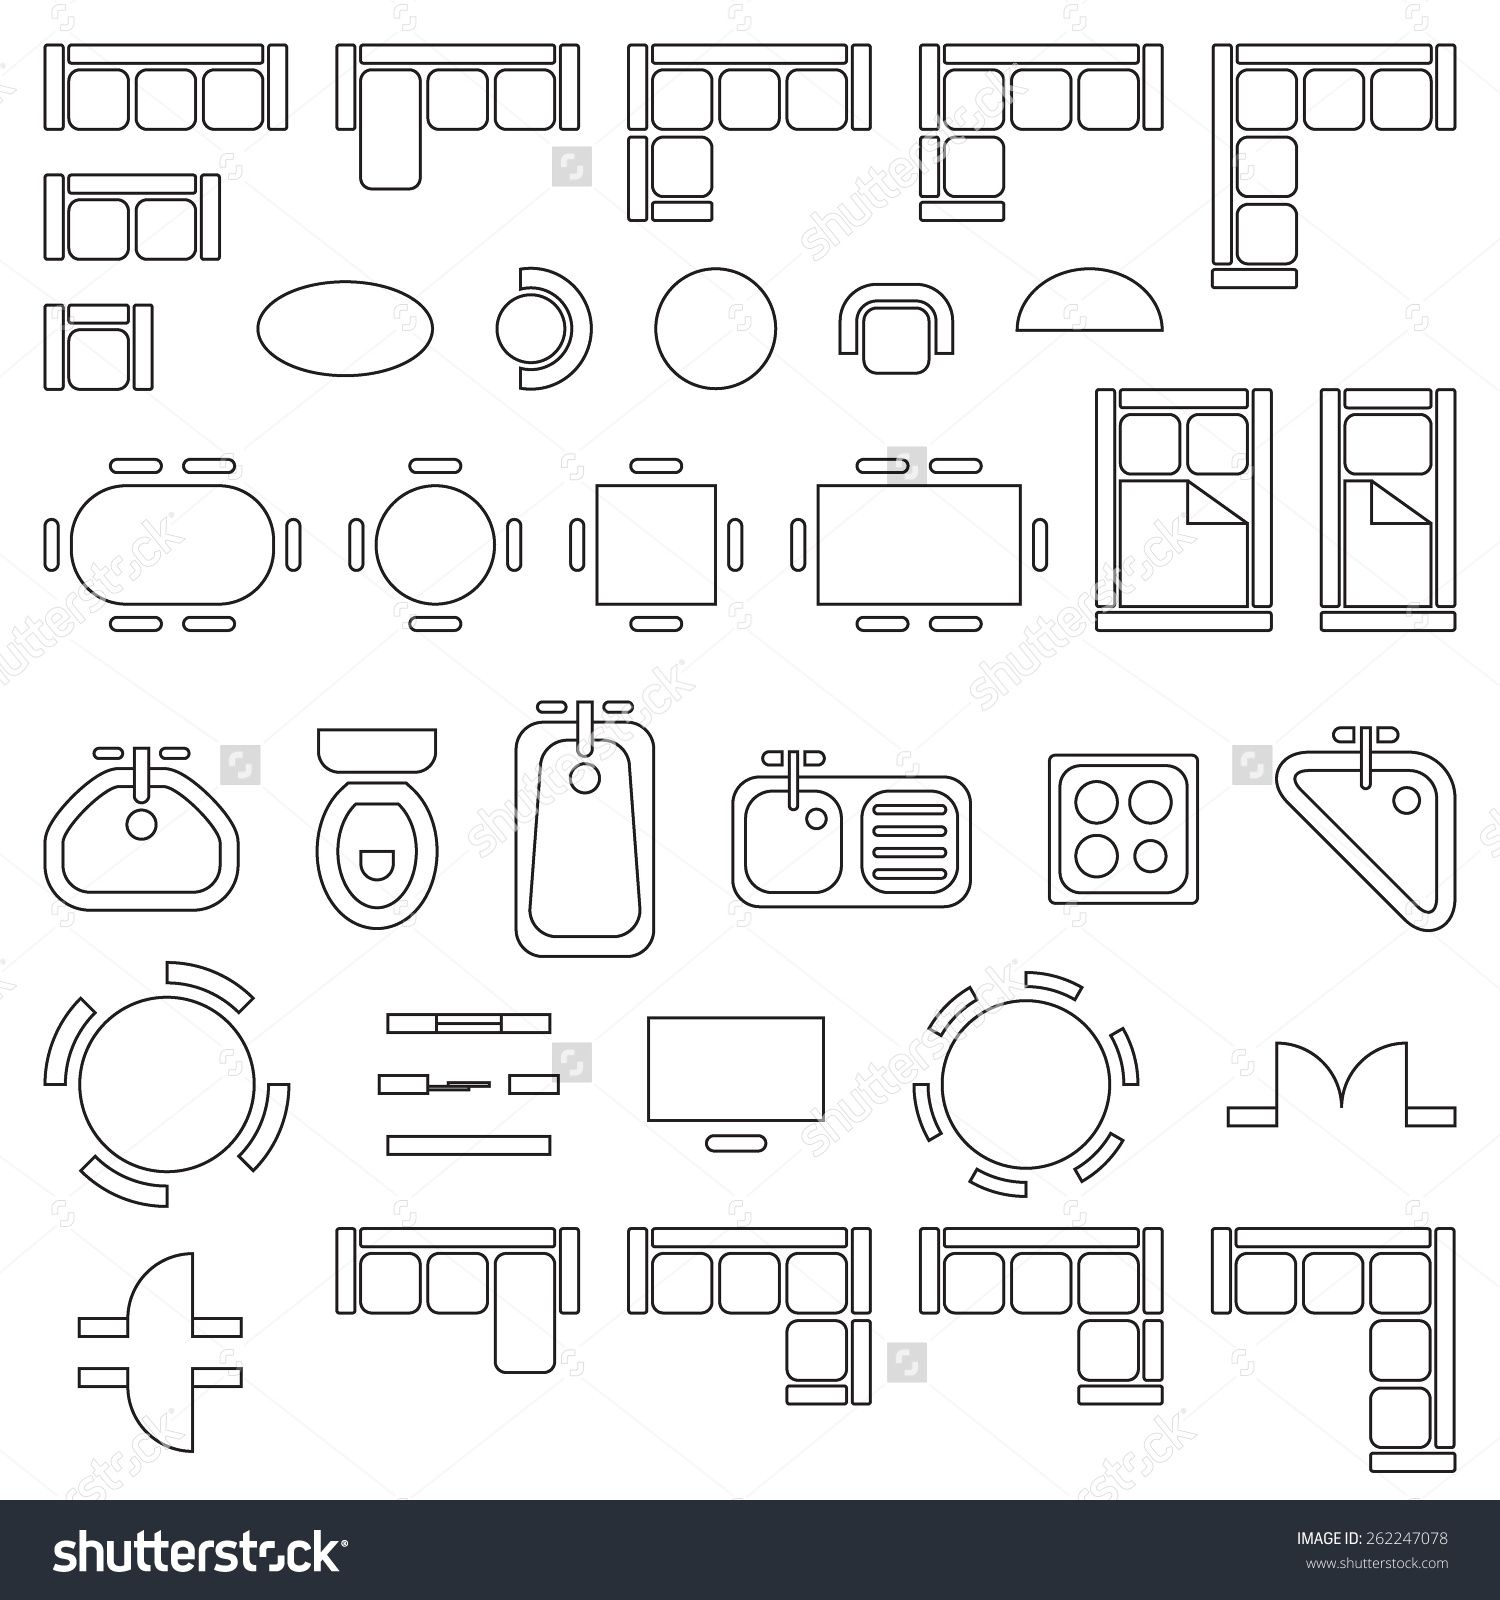 hight resolution of standard furniture symbols in architecture plans icons set save to a lightbox dining room centerpieces upholstered